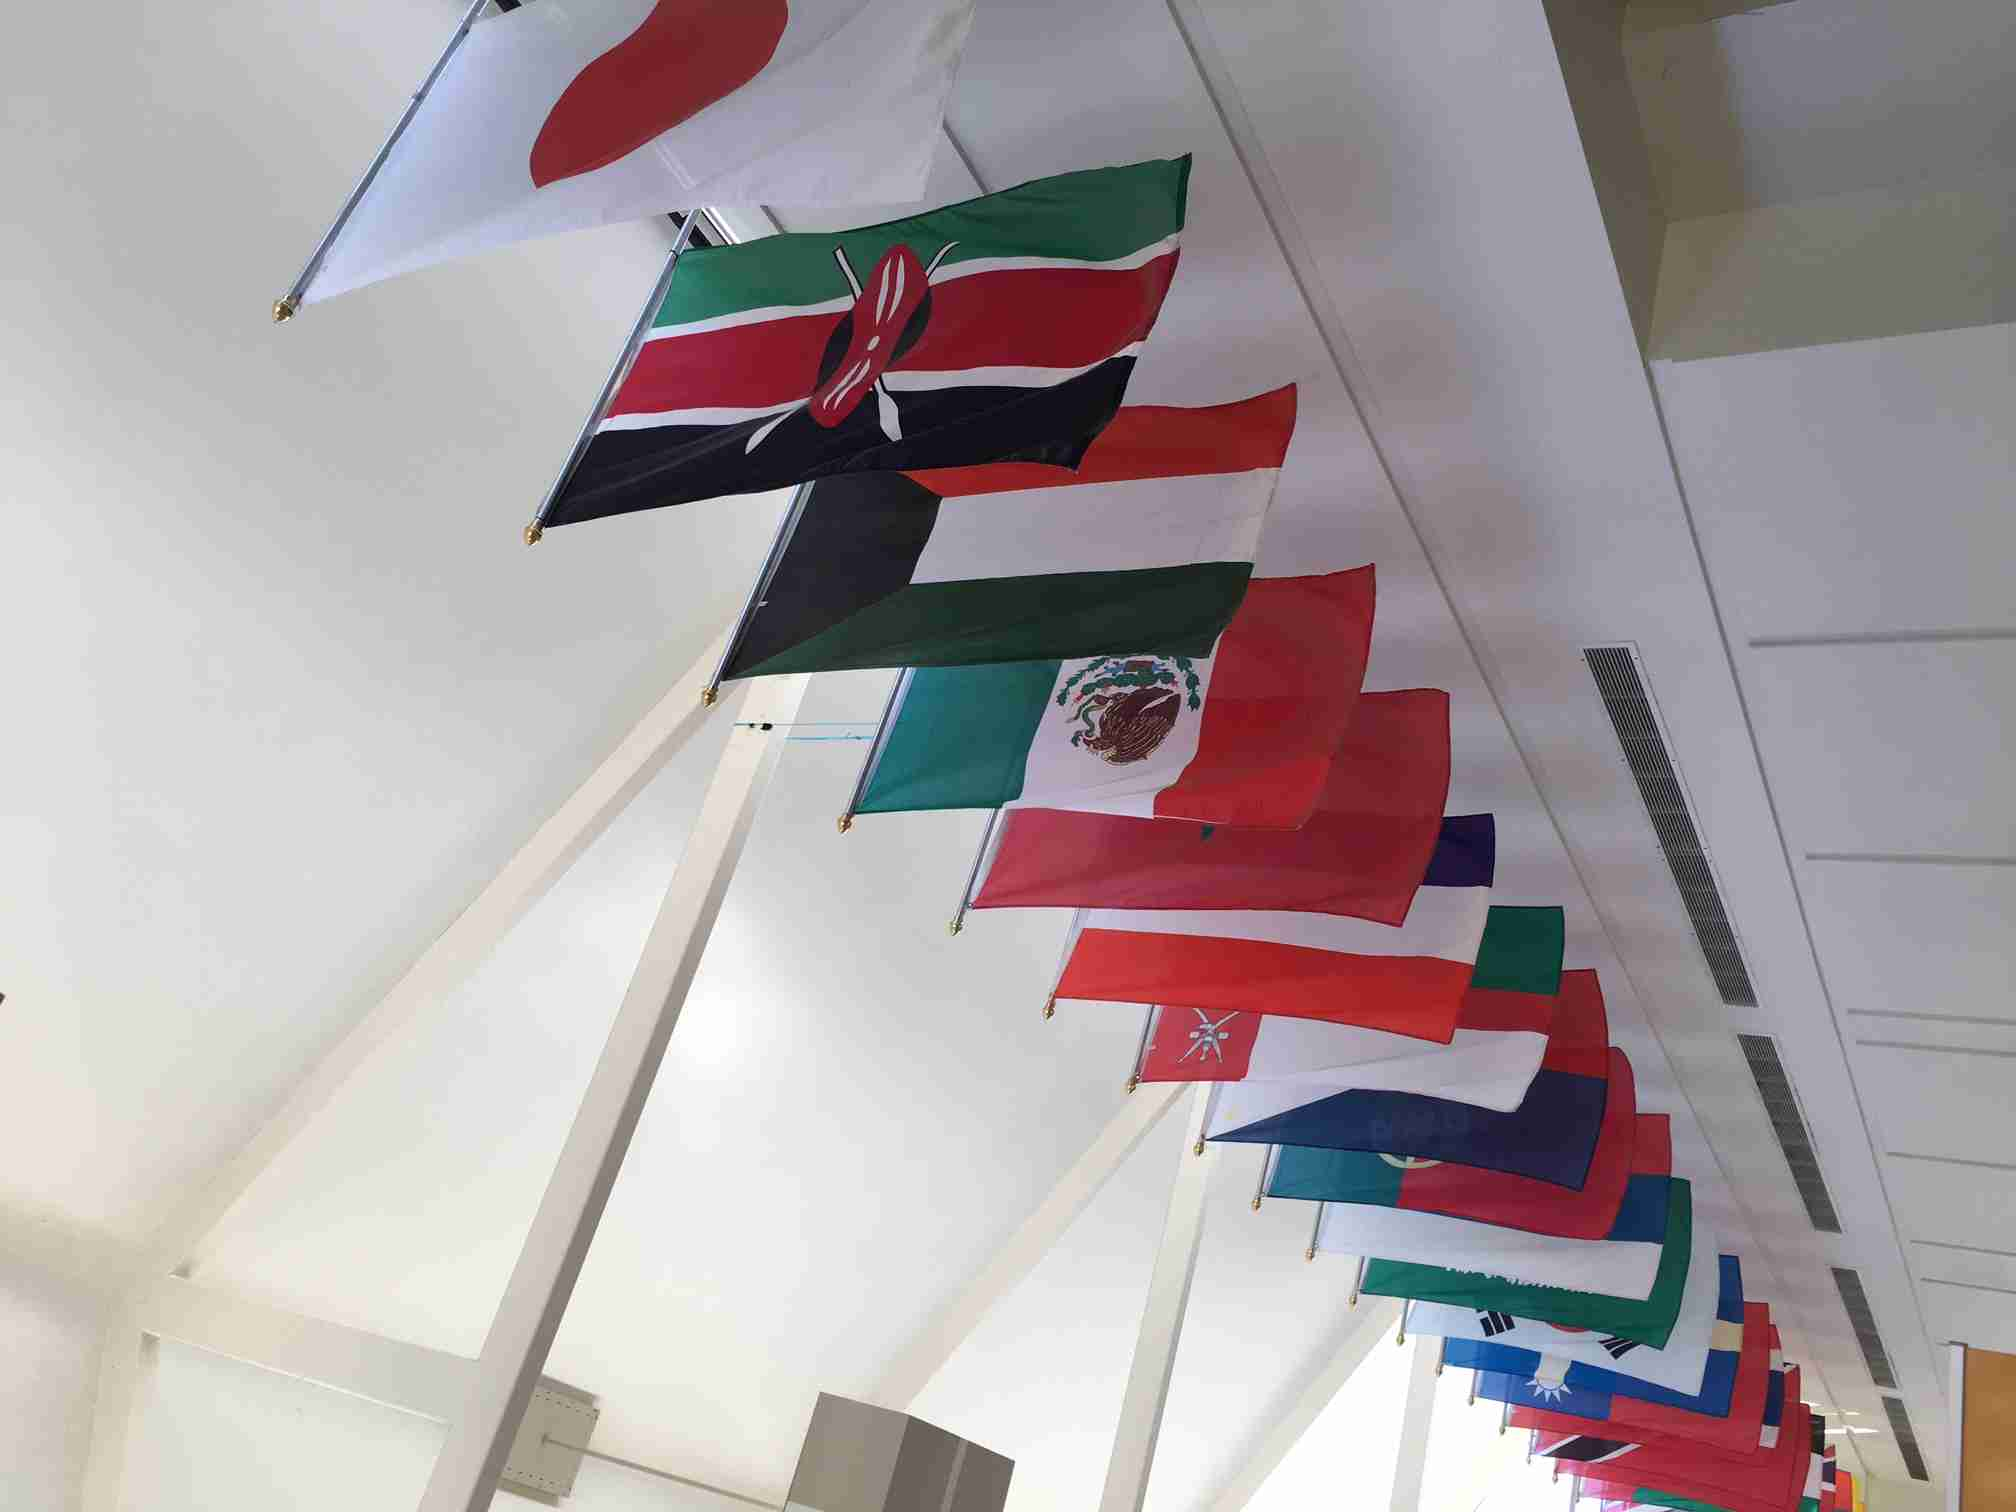 International flags displayed on East Campus Building 5